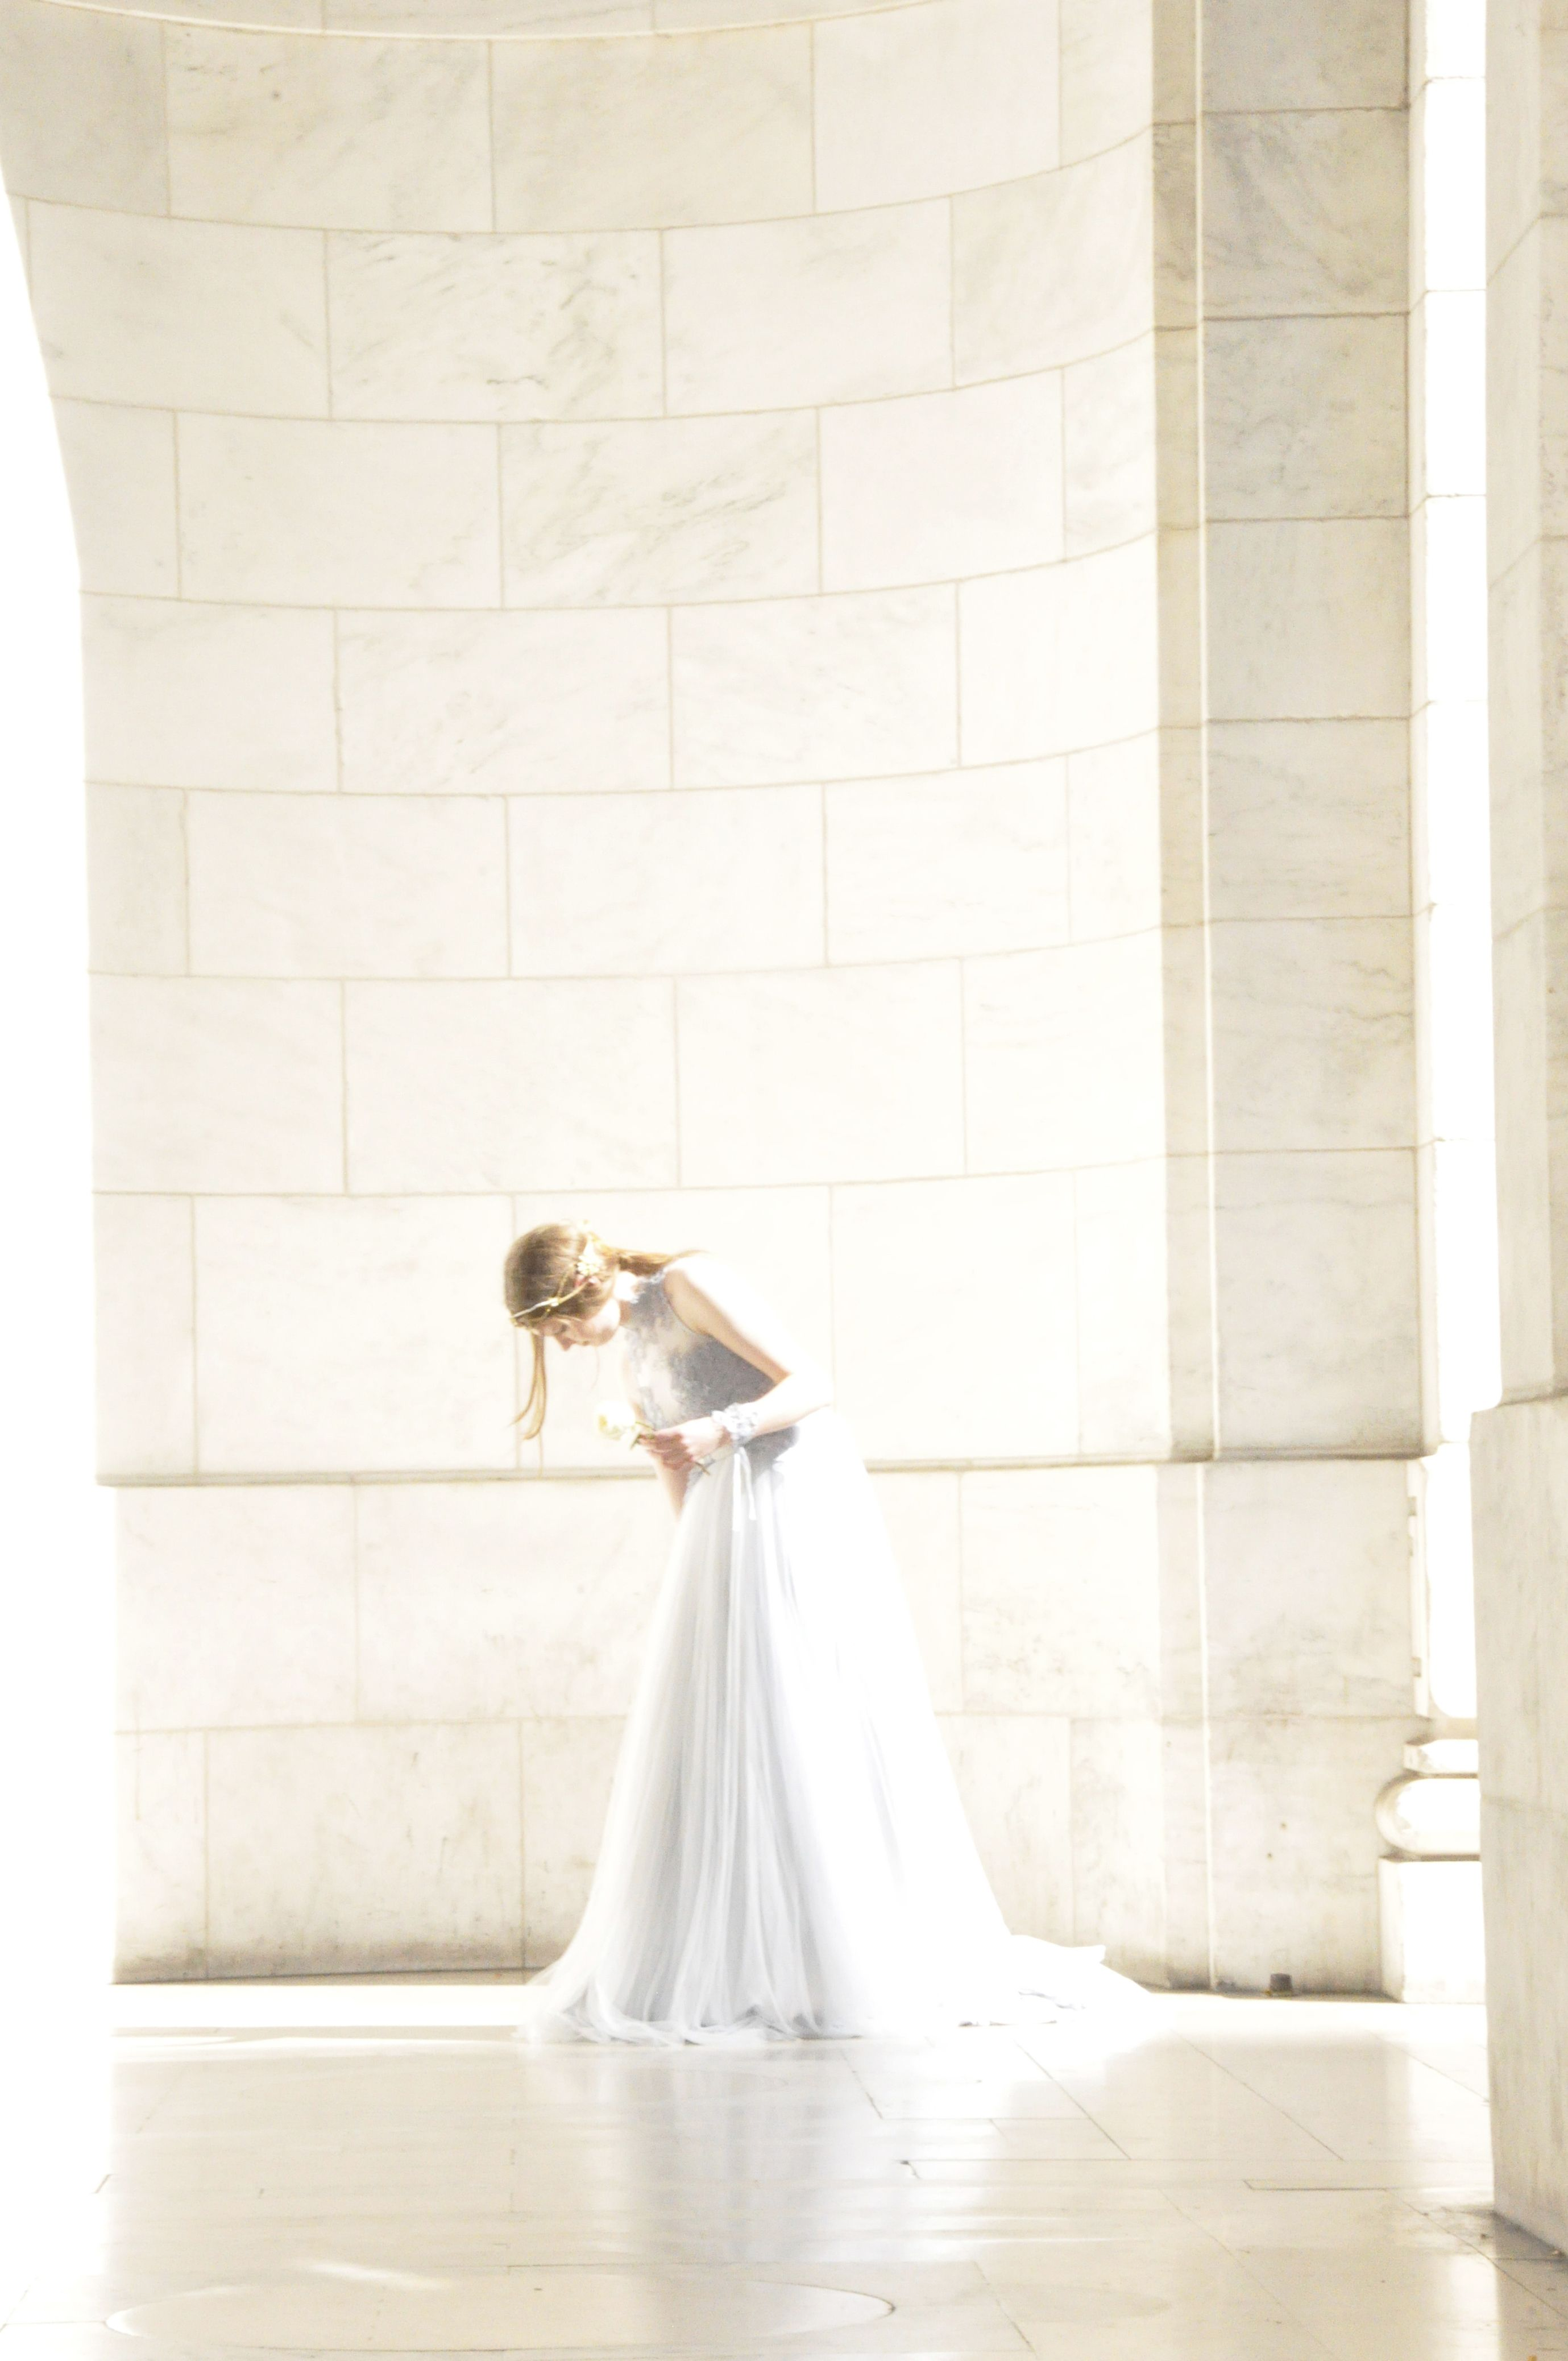 Filipino wedding dress  Our model Molly Harris in the Hepburn Gown from When Freddie Met